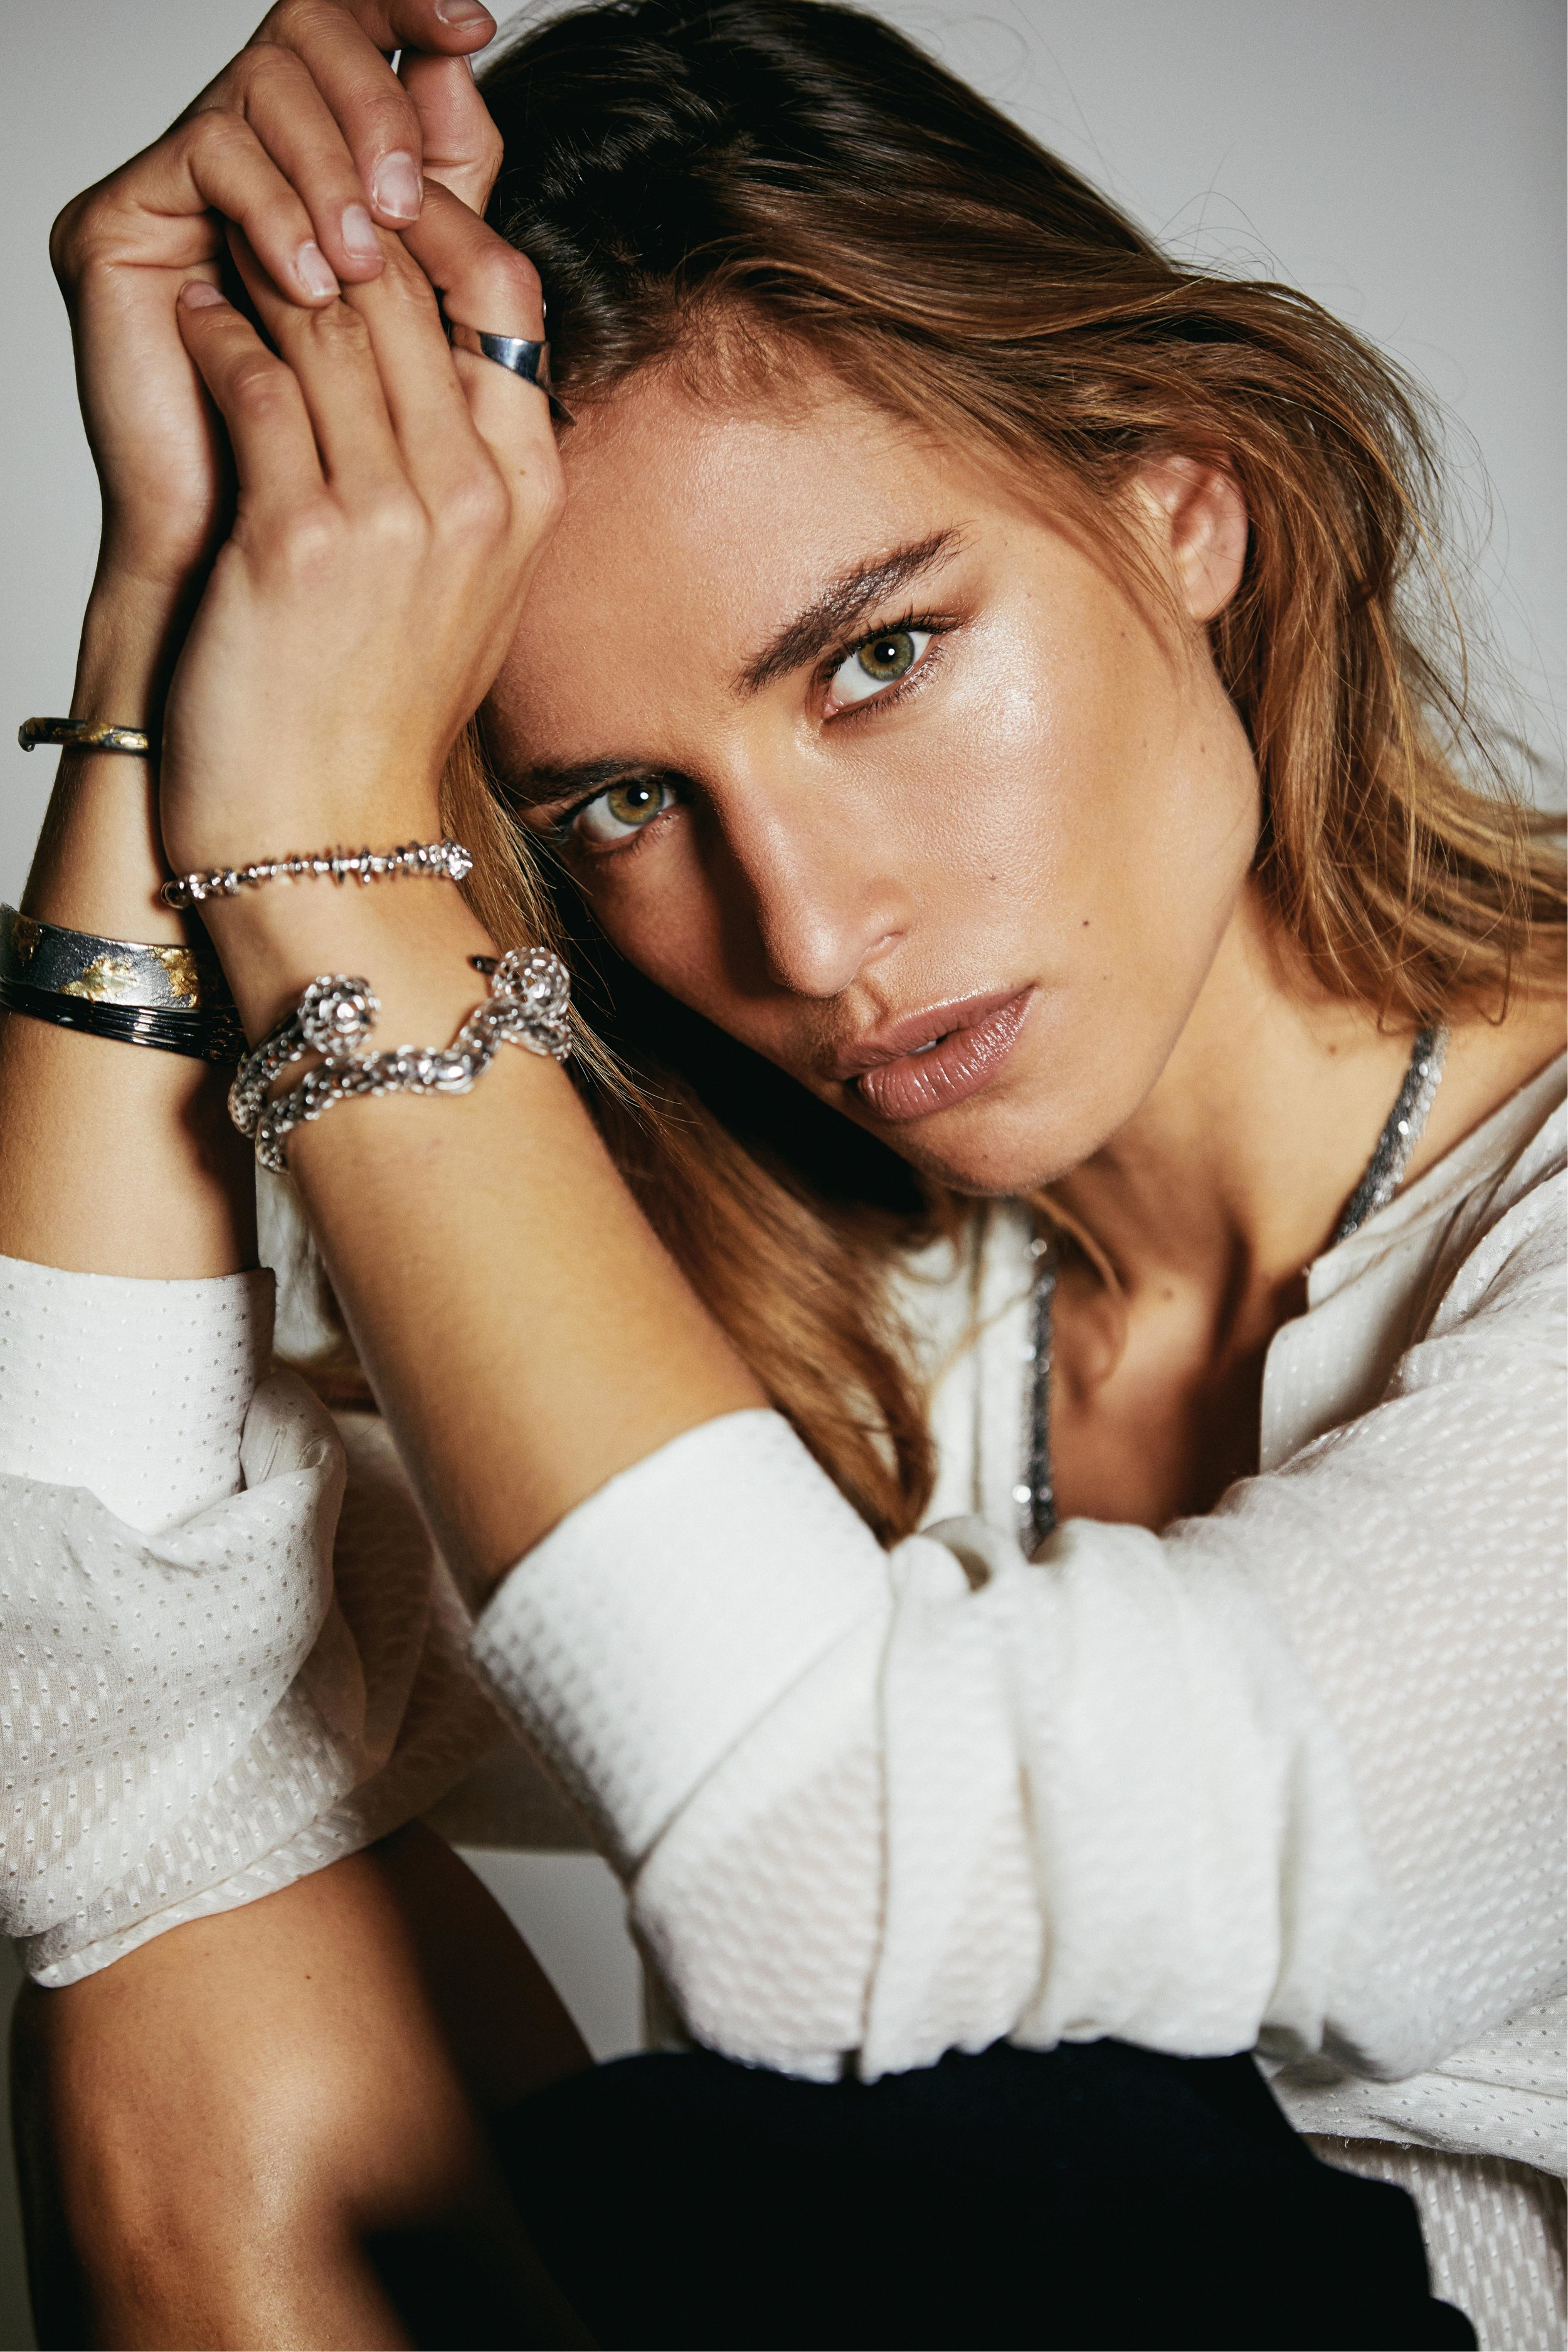 Cuffs by Vitae Ascendere; Cuffs by 602 Lab; Cuffs by Baharra NY; Necklace by Vitae Ascendere; Ring by 602 Lab; Anklet by Baharra NY